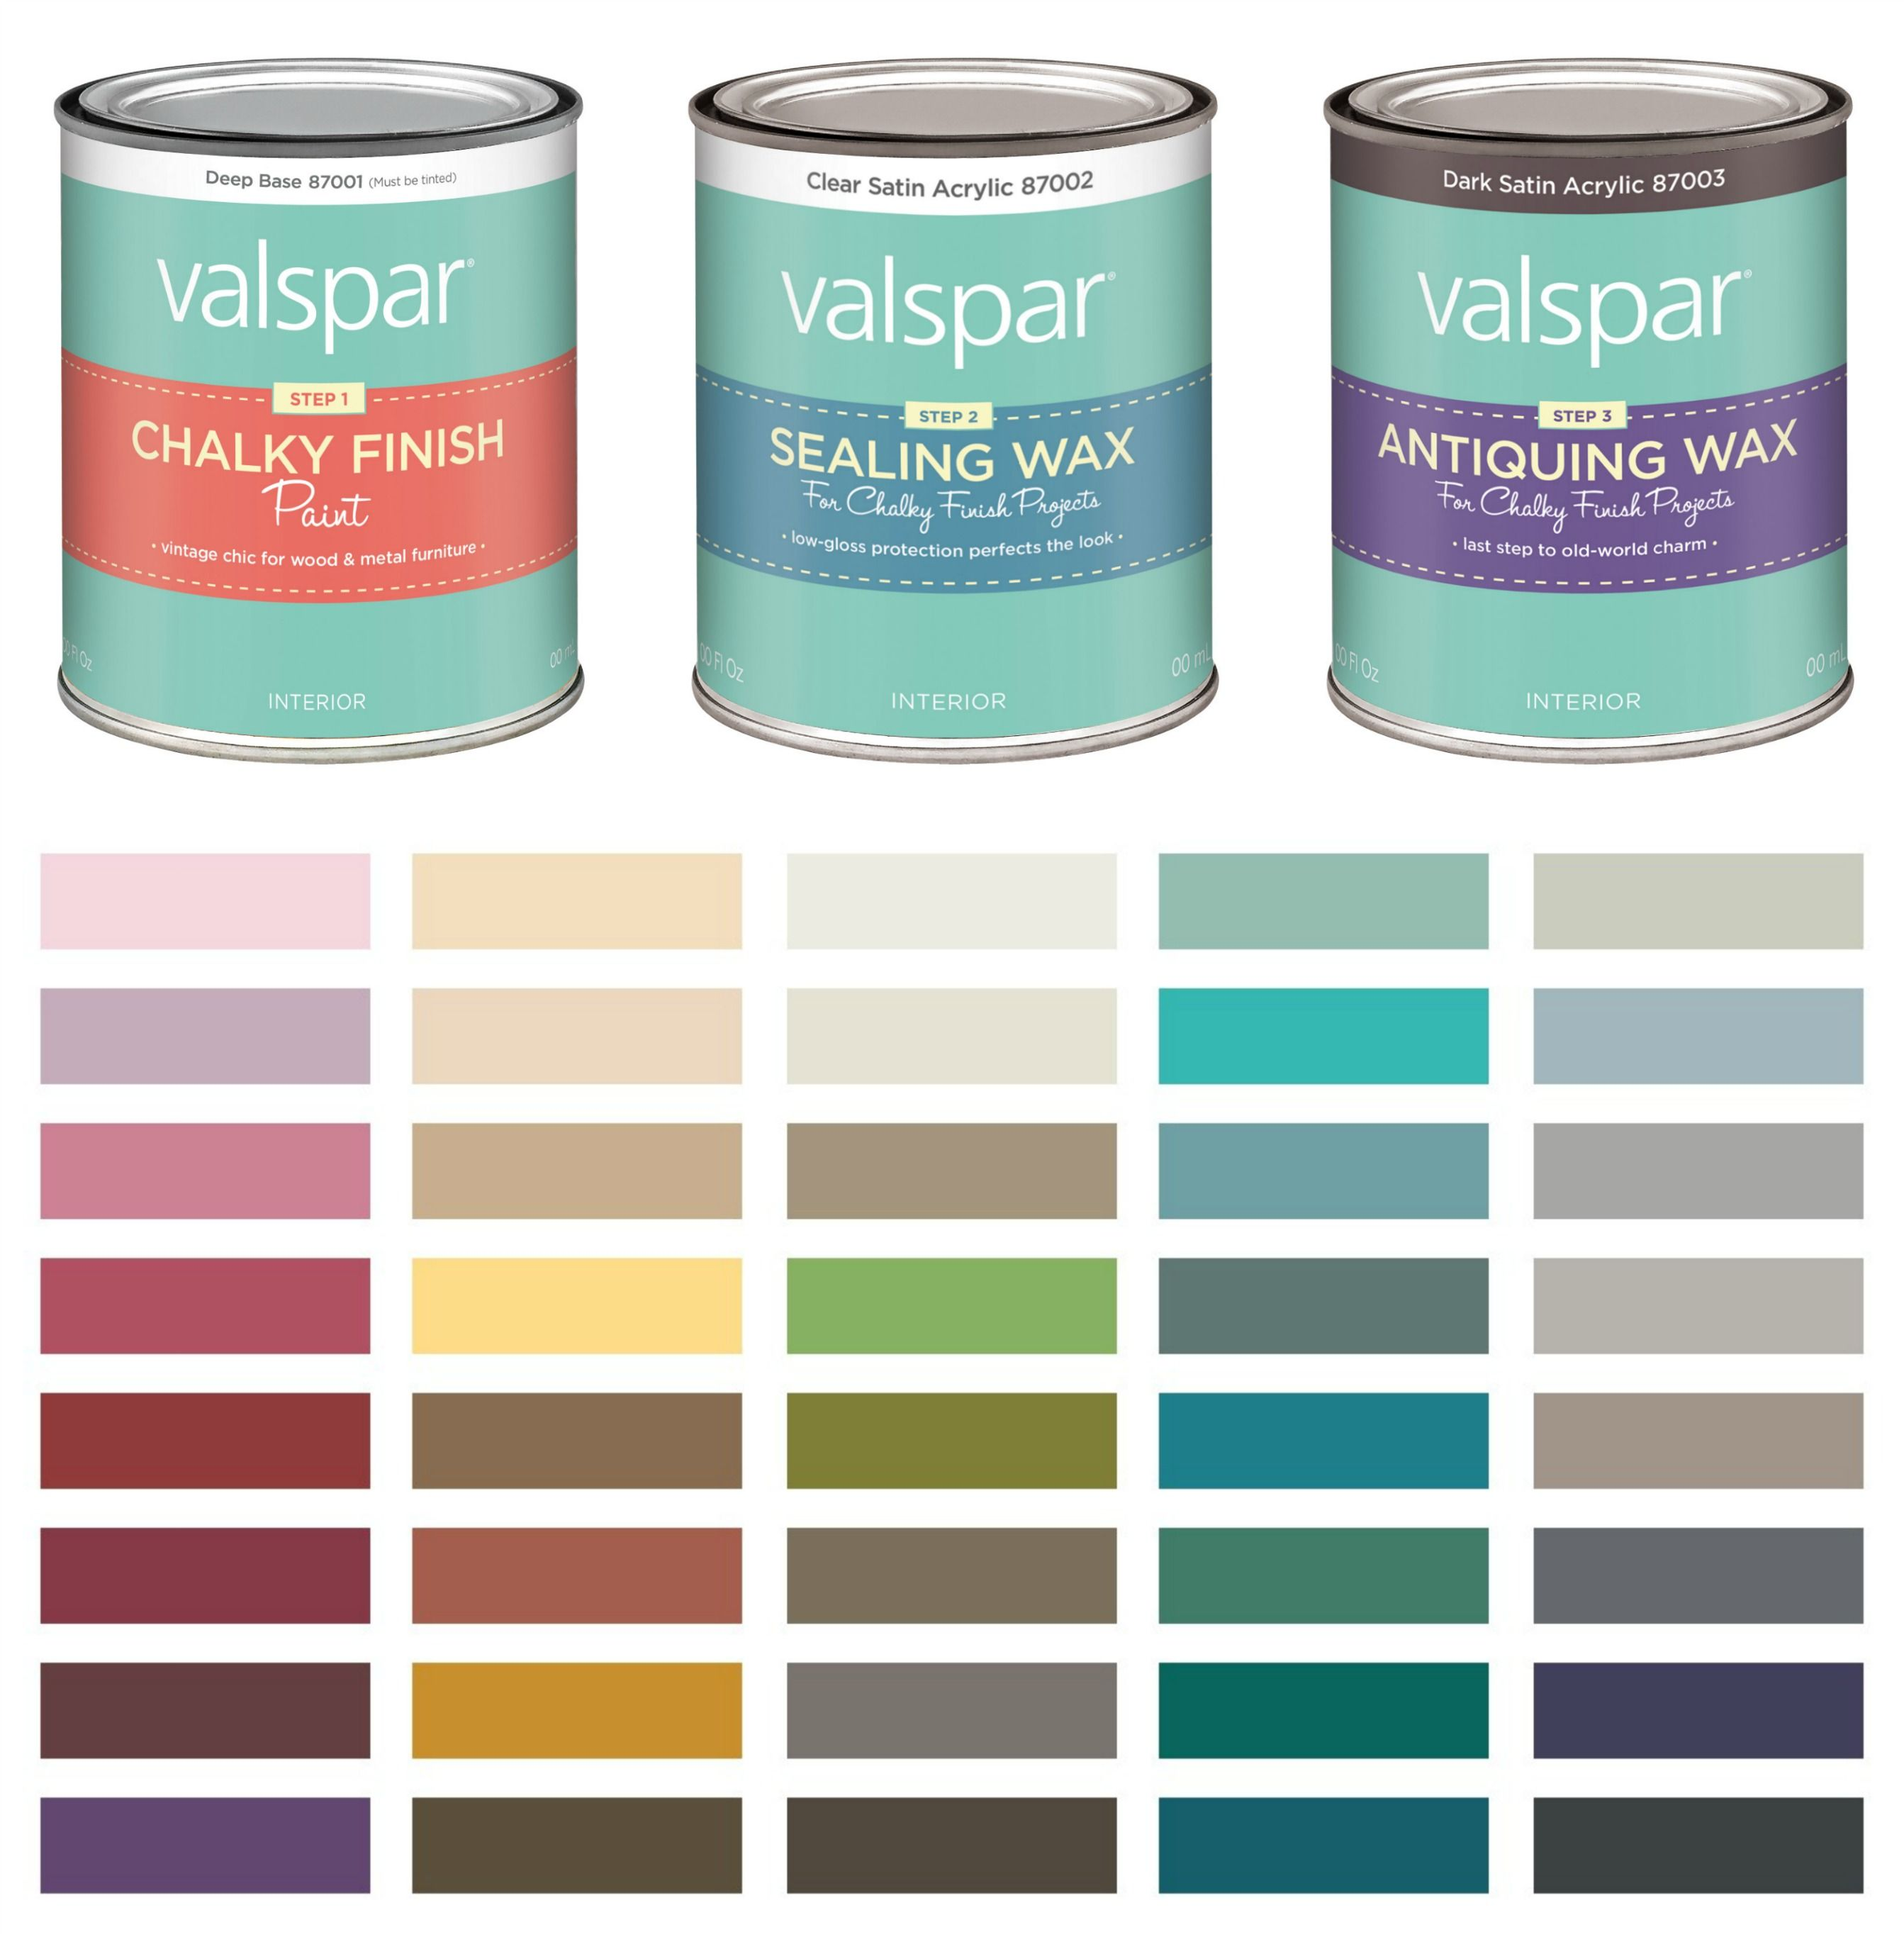 Bedroom Paint Ideas Lowes jewelry armoire makeover with valspar chalky finish paint | home